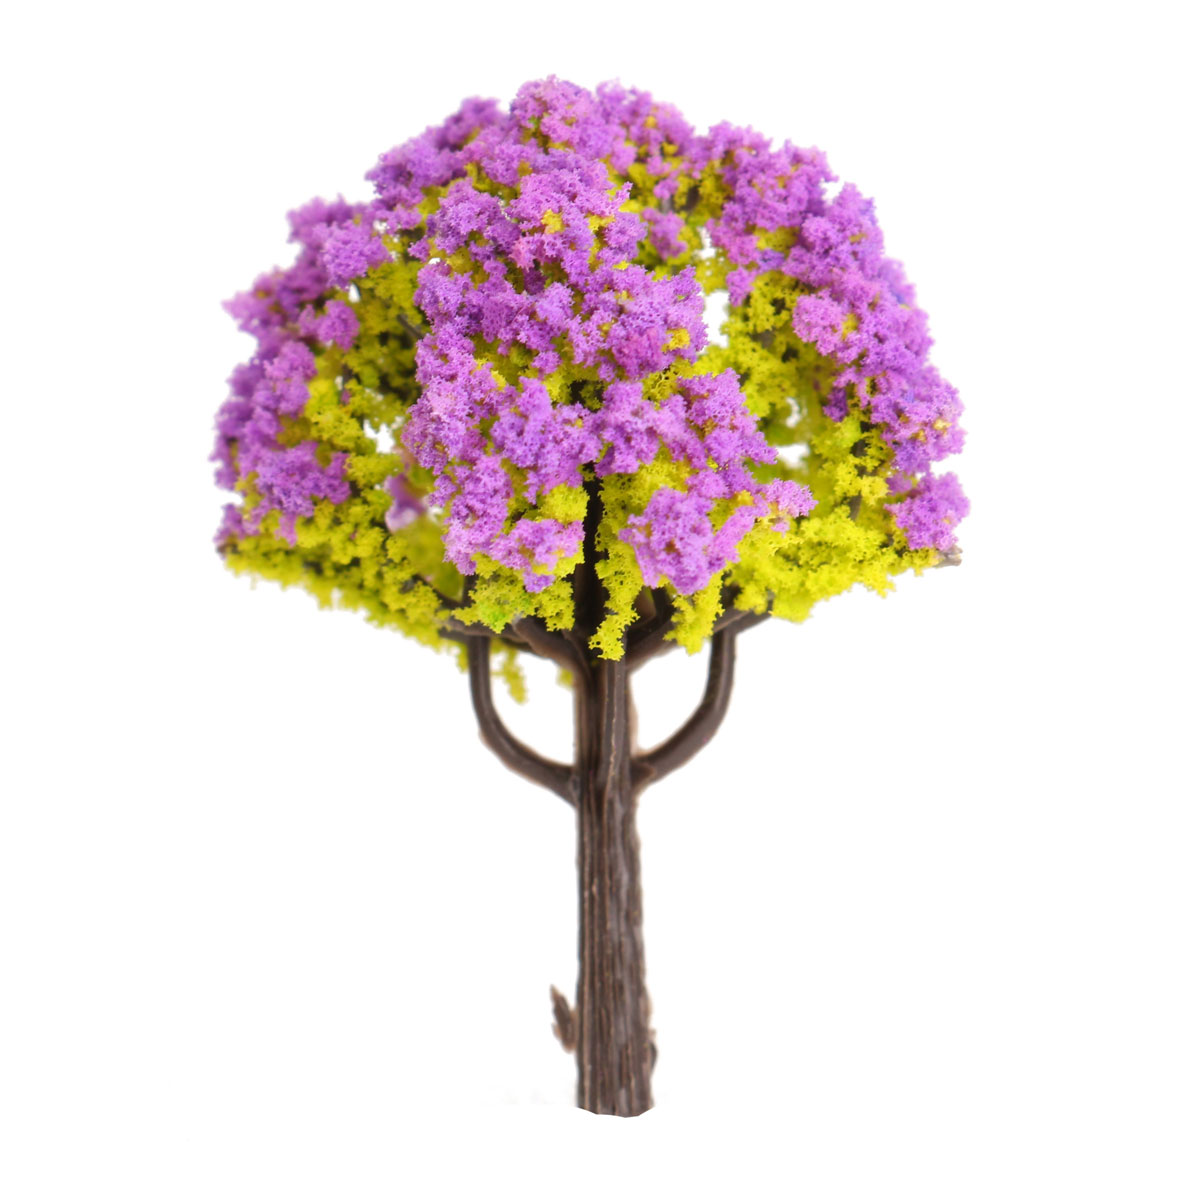 Two Become One Decorative Trees: 1~2X DIY Miniature Tree Plants Fairy Garden Accessories